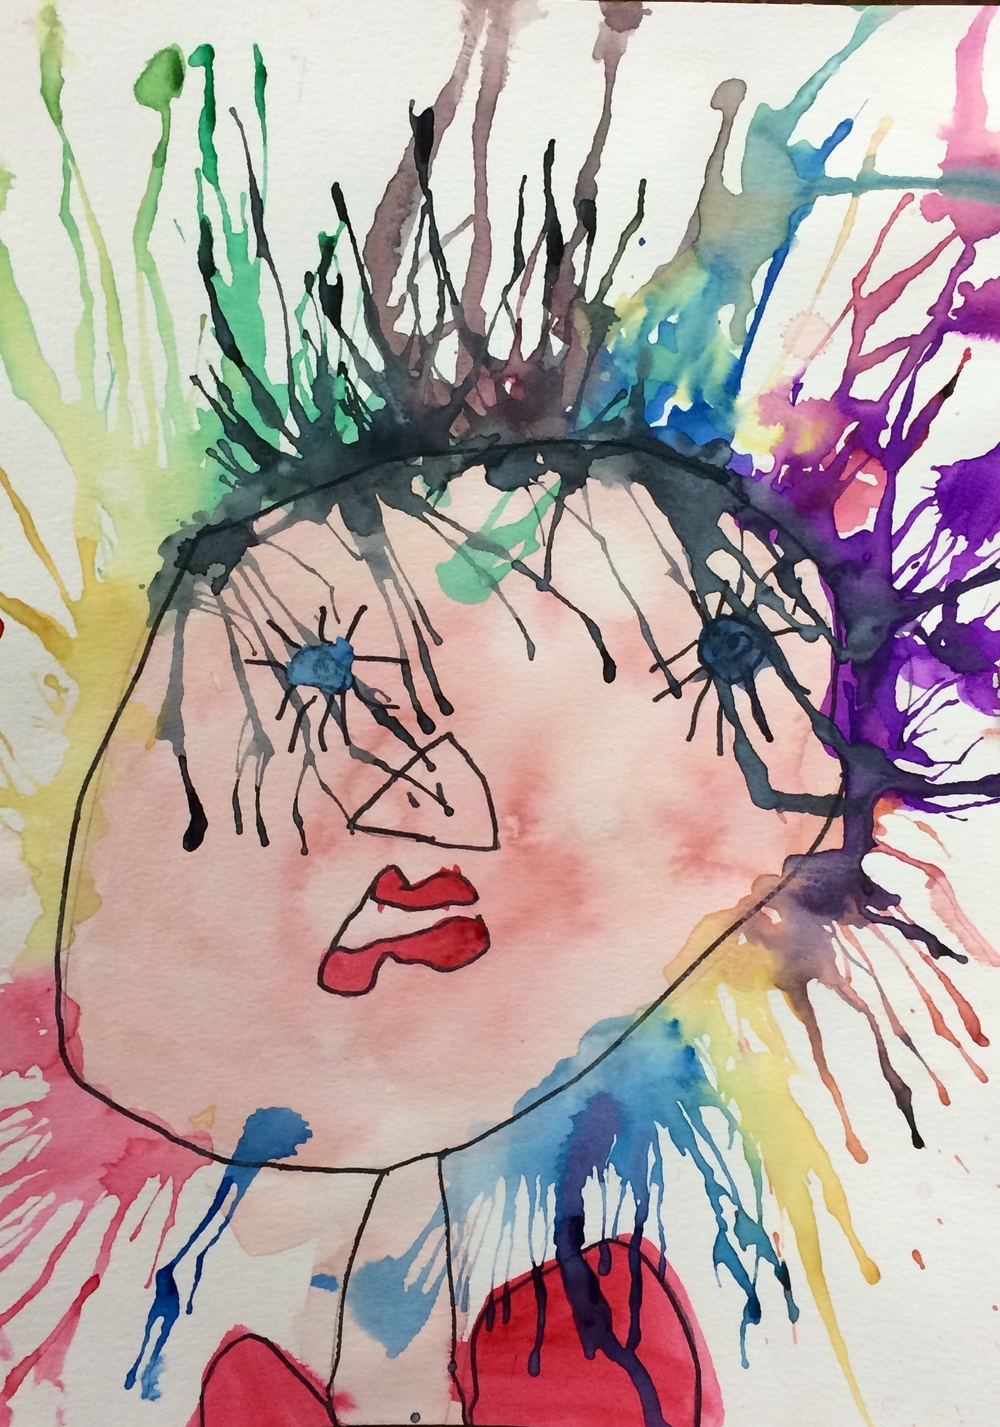 Emilie, age 6, Self Portrait with Crazy Hair